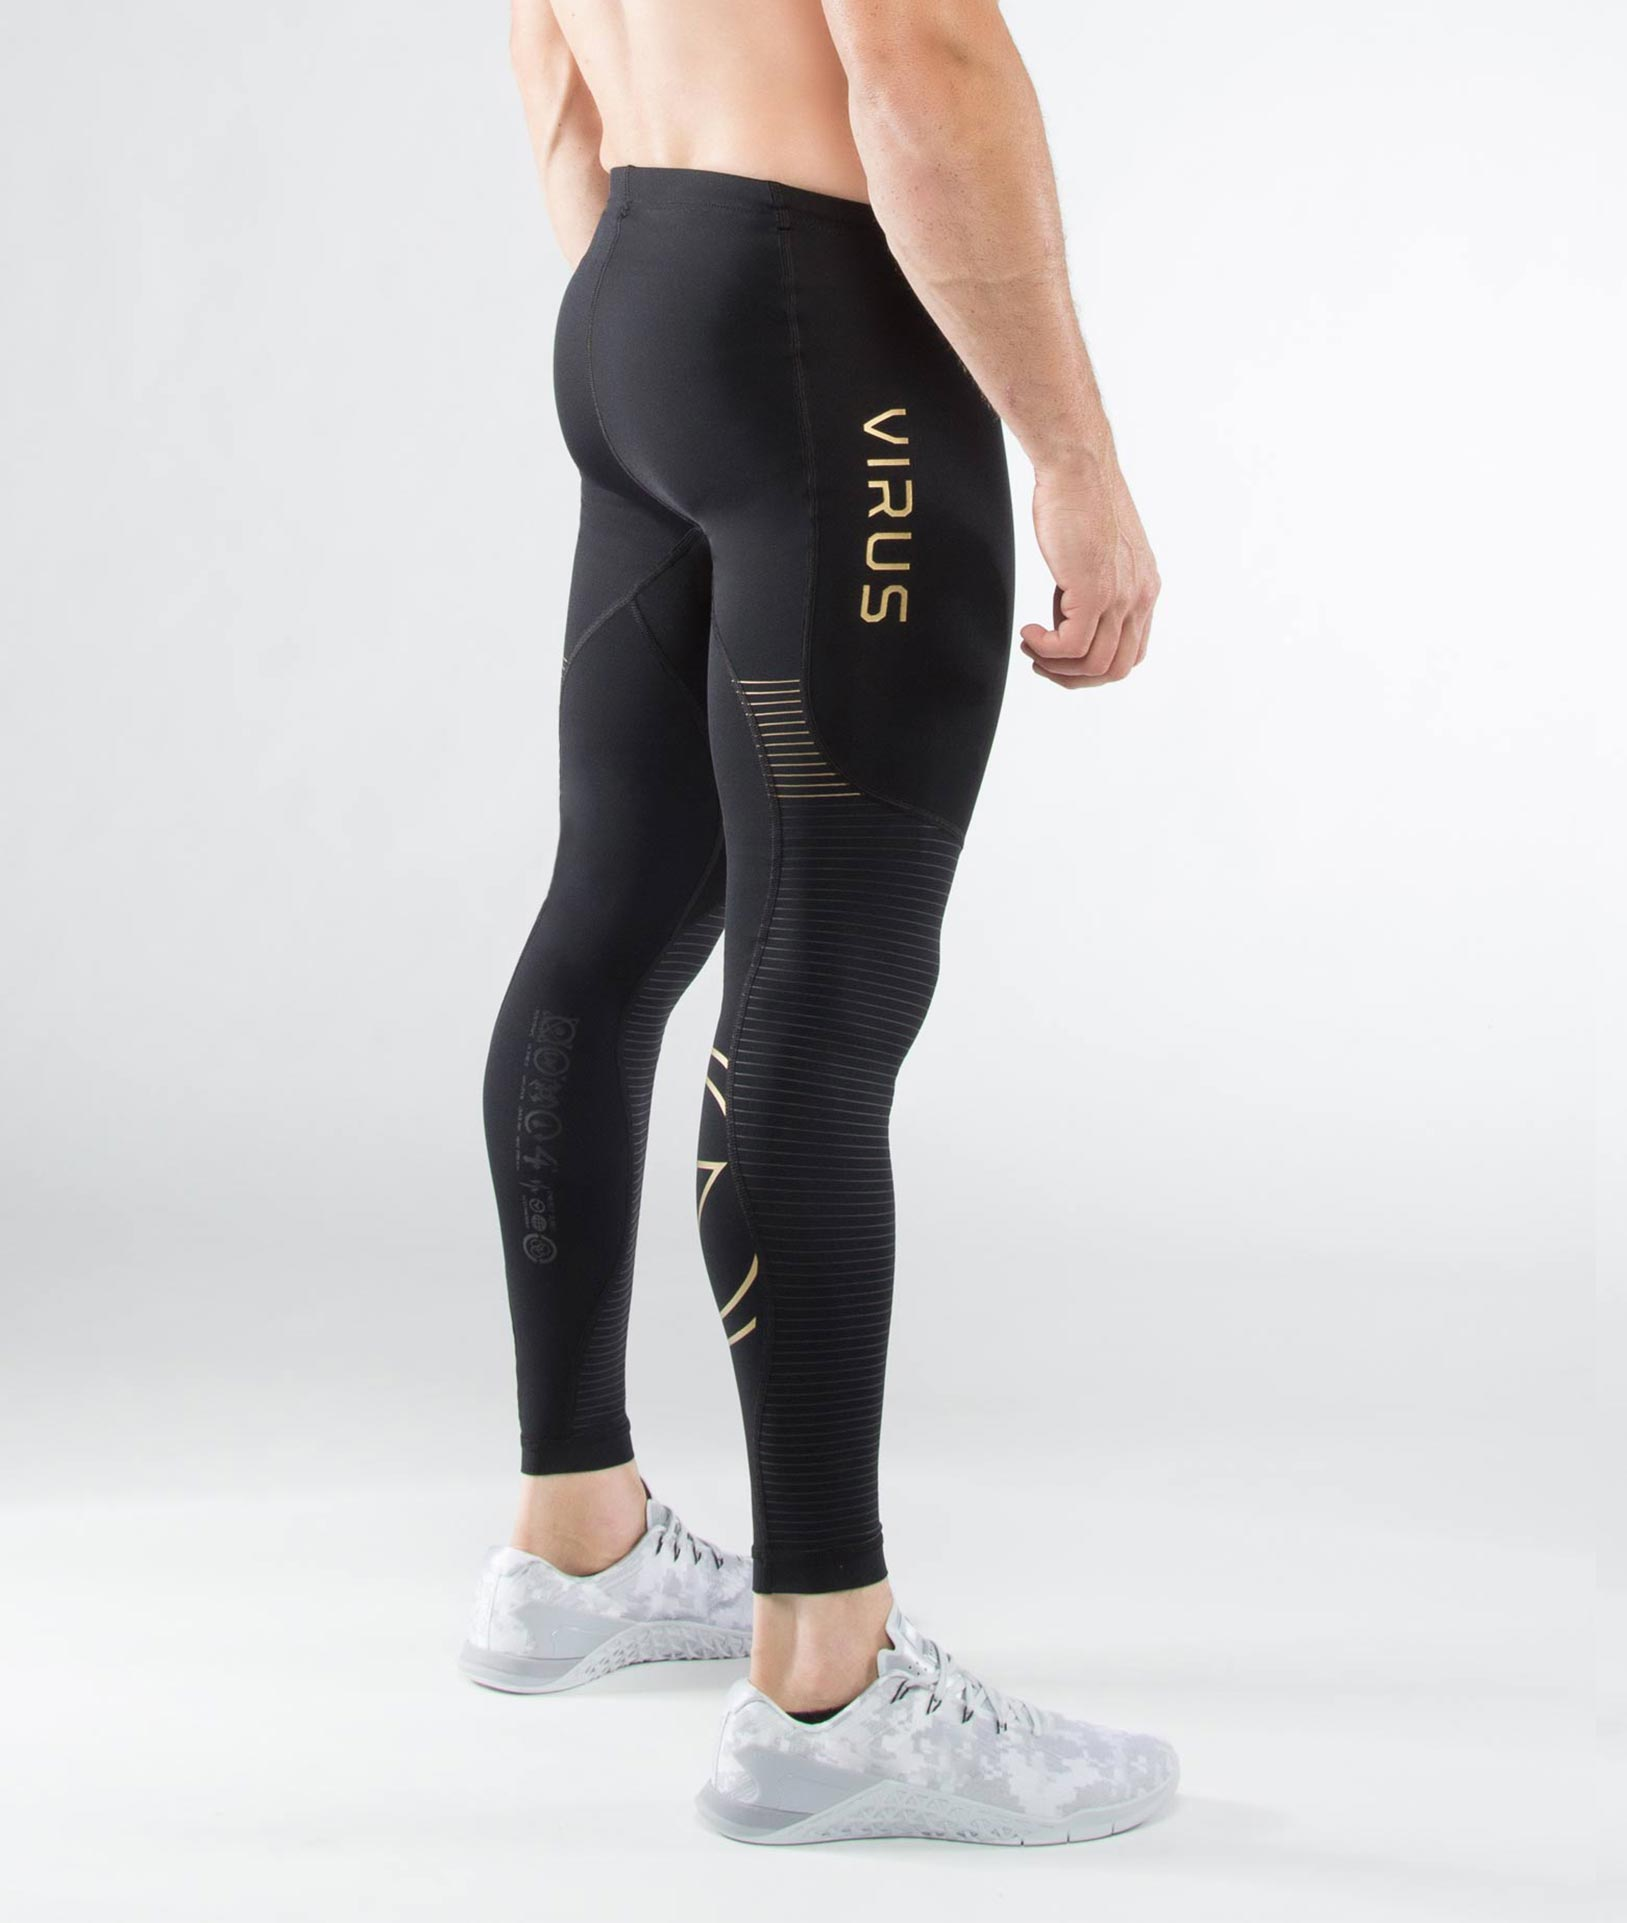 Men's Bioceramic™ Compression V3 Tech Pants (Au9X) Black/Gold